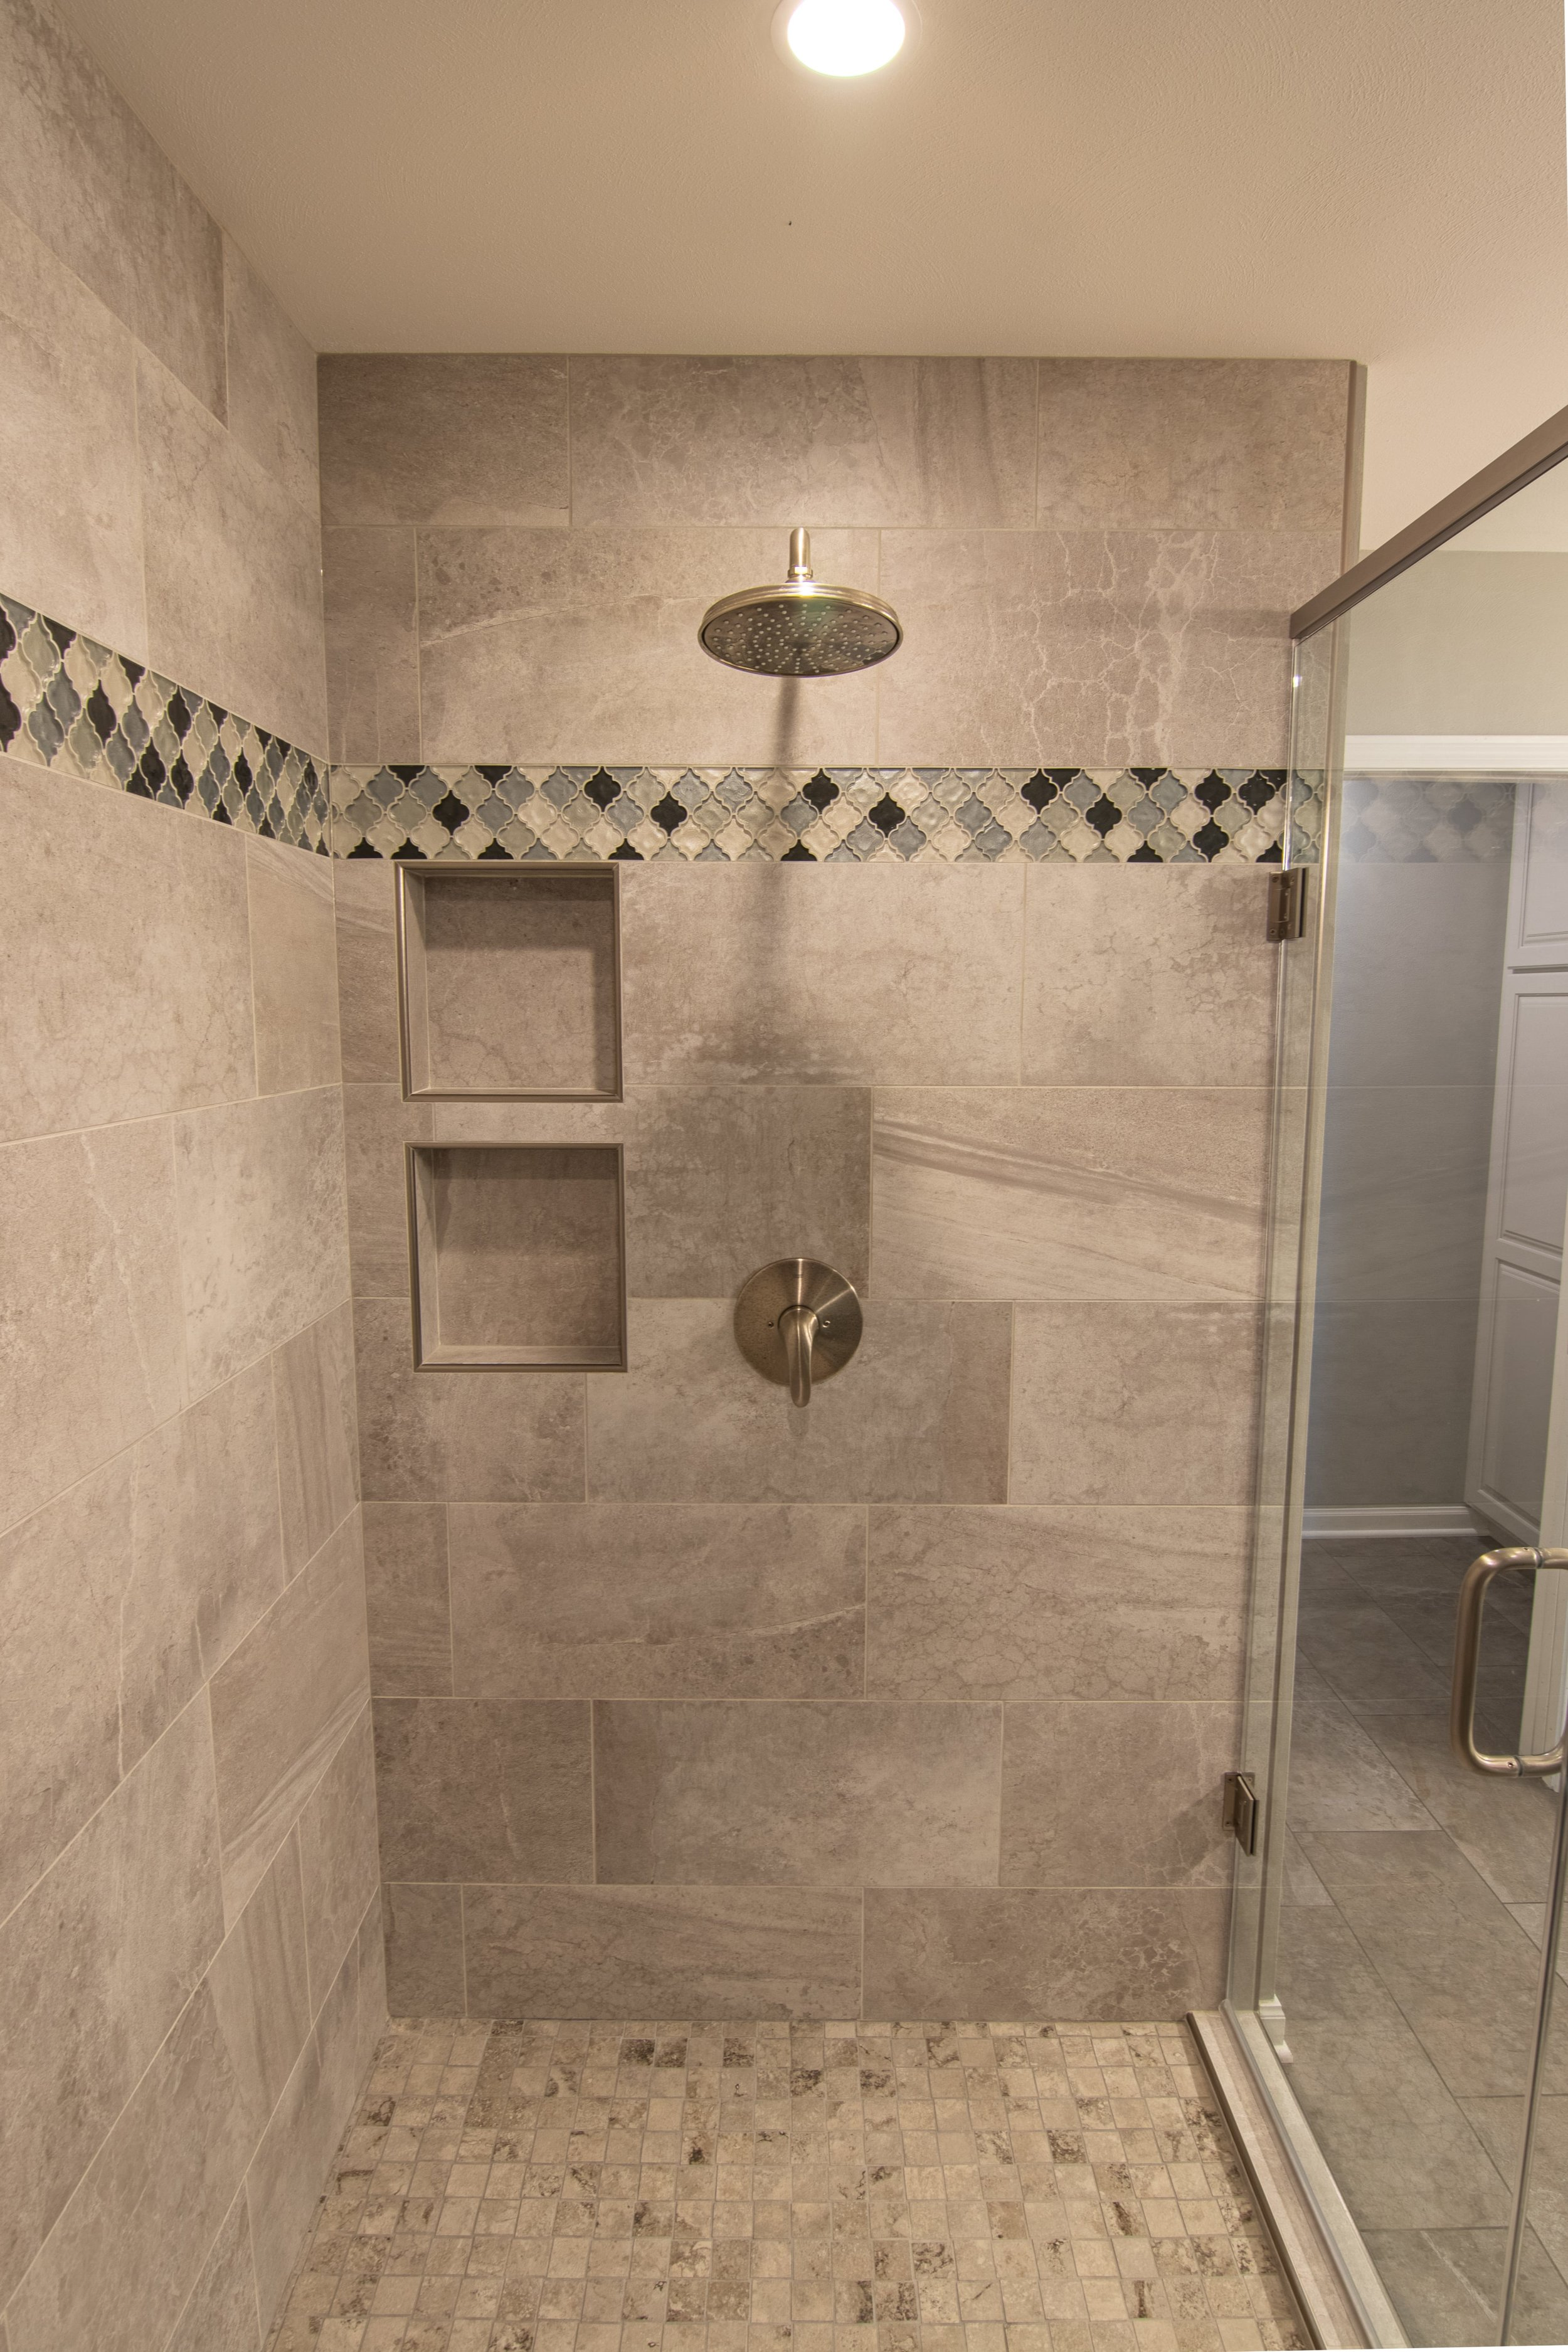 bathroom-remodel-renovate-monona-wi-6.jpg